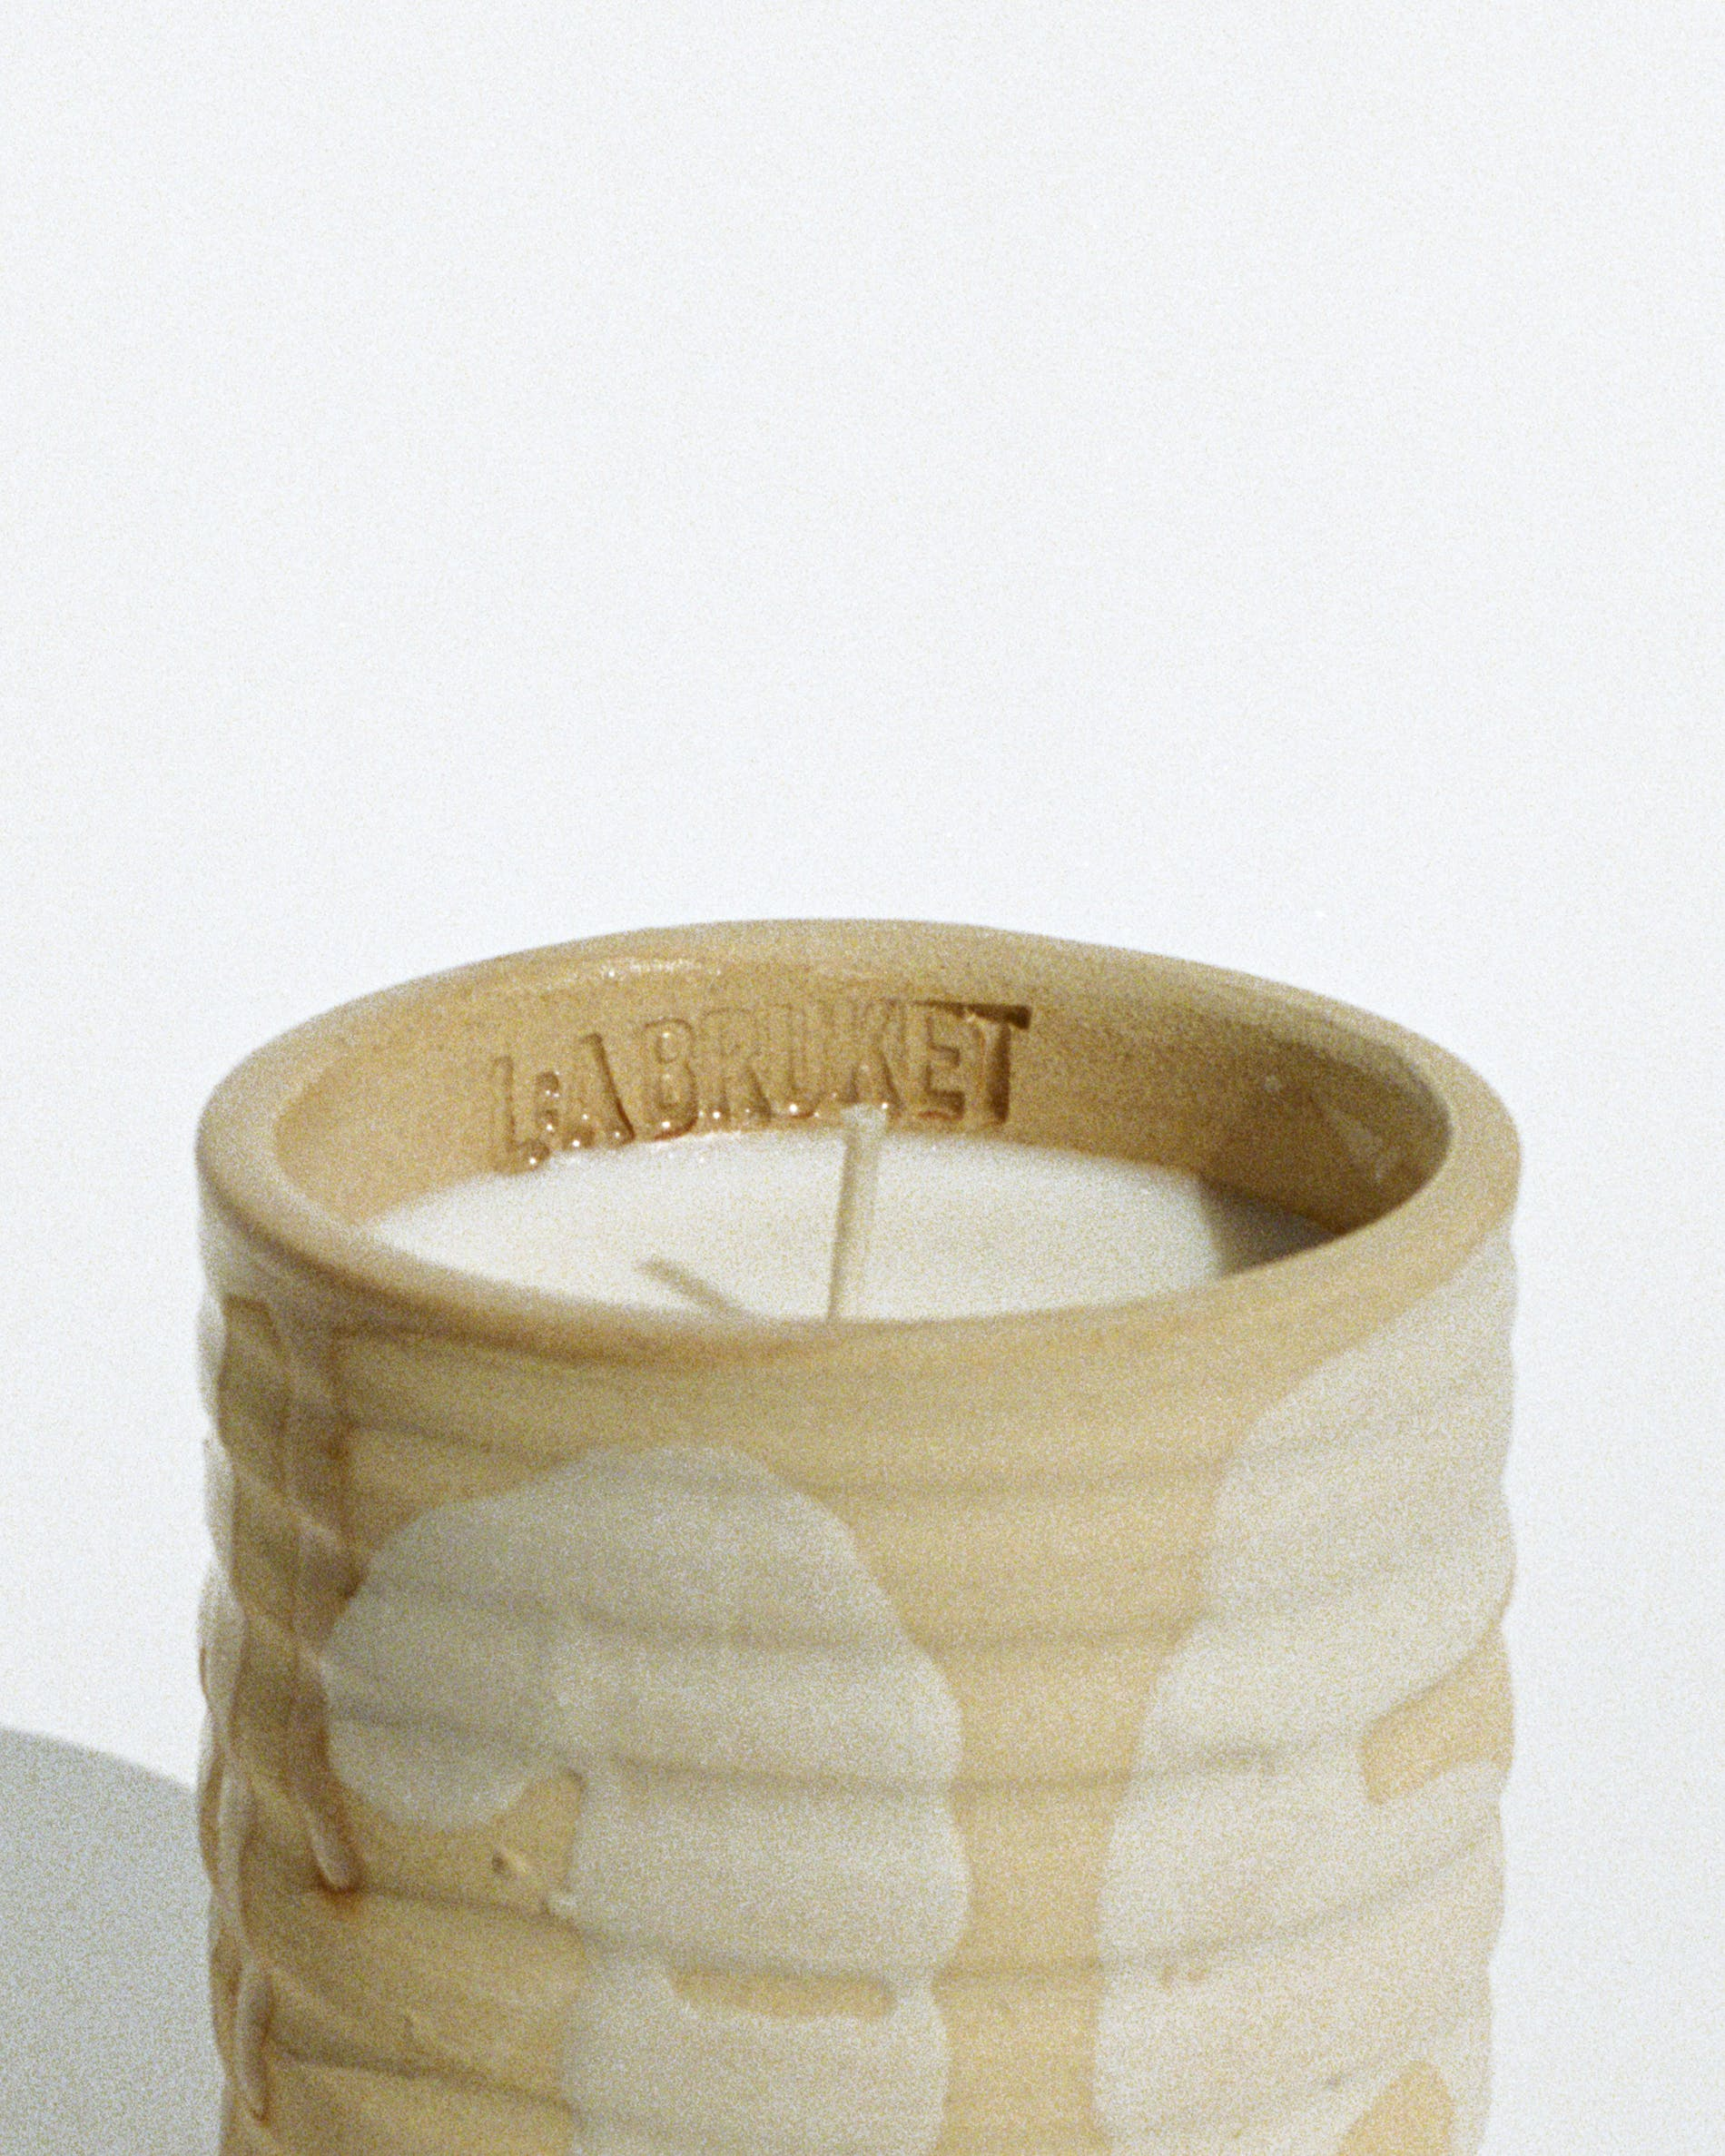 Hand-Made Ceramic Scented Candle (Limited edition)